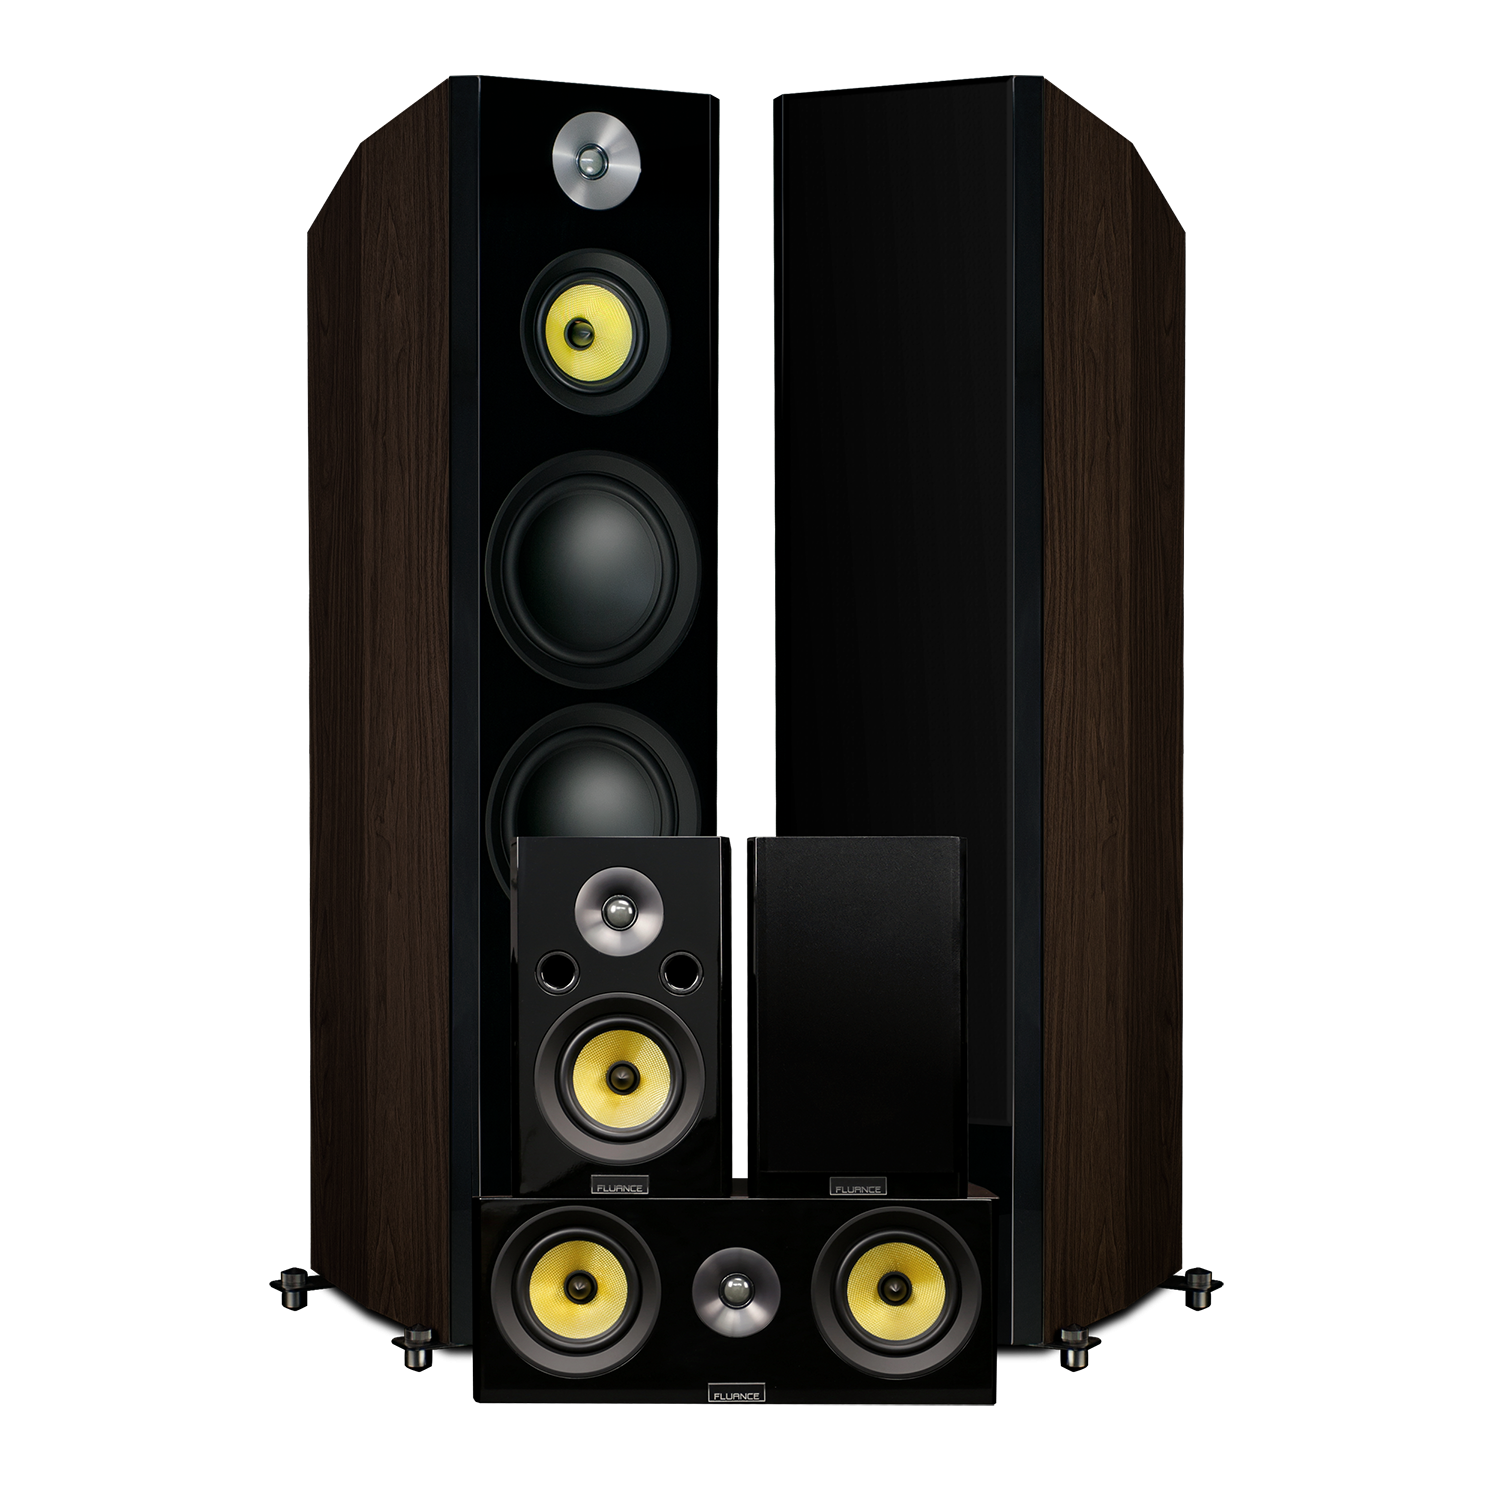 Fluance Signature HFHTB Dark Walnut Home Theater Speaker System